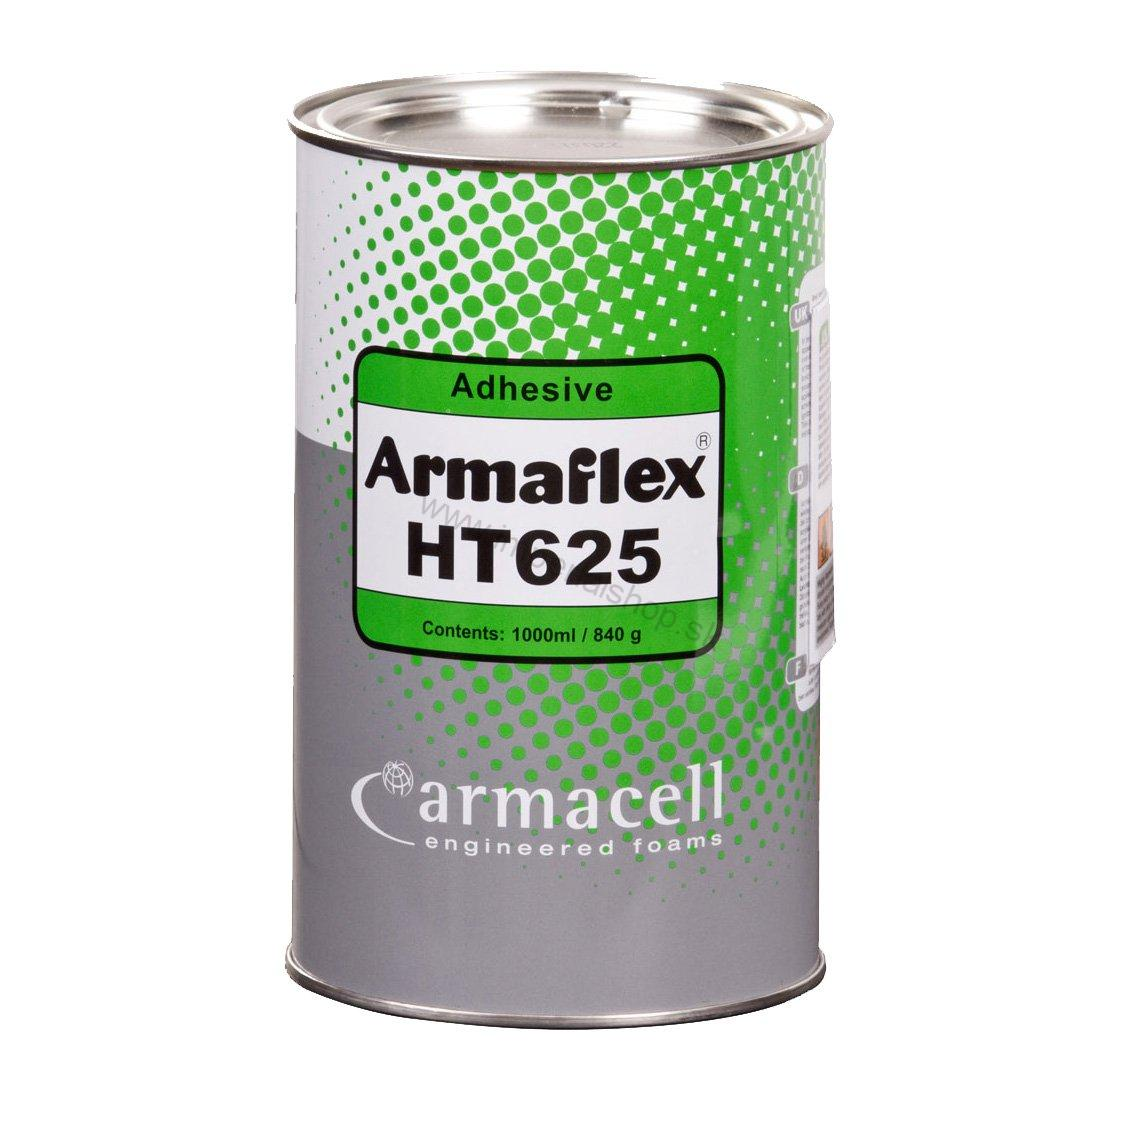 Lepidlo Armaflex HT 625 500ml